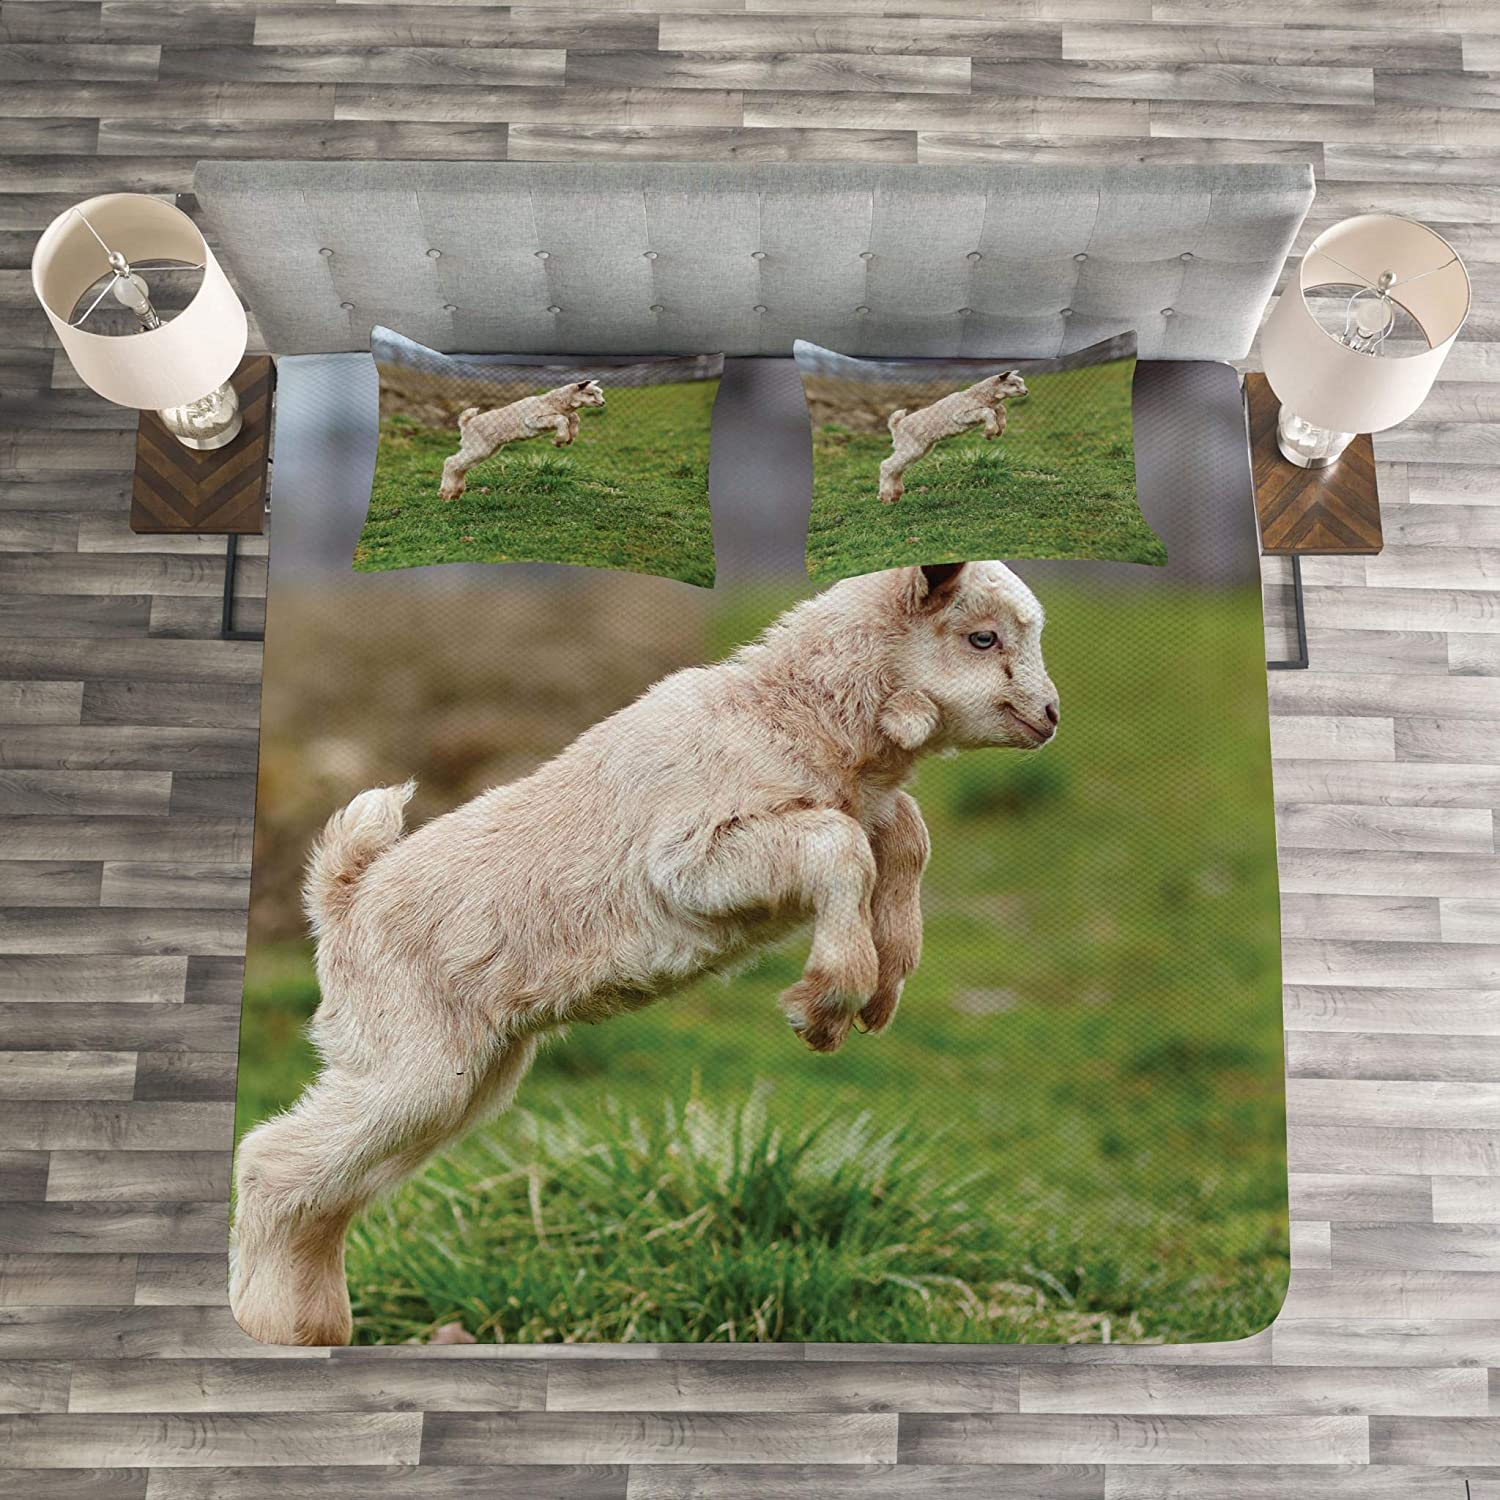 Lunarable Goat Bedspread Set Queen Size Decorative Quilted 3 Piece Coverlet Set with 2 Pillow Shams Beige Brown Fern Green Baby Farm Animal Jumping Around Playing in The Spring Blurred Background